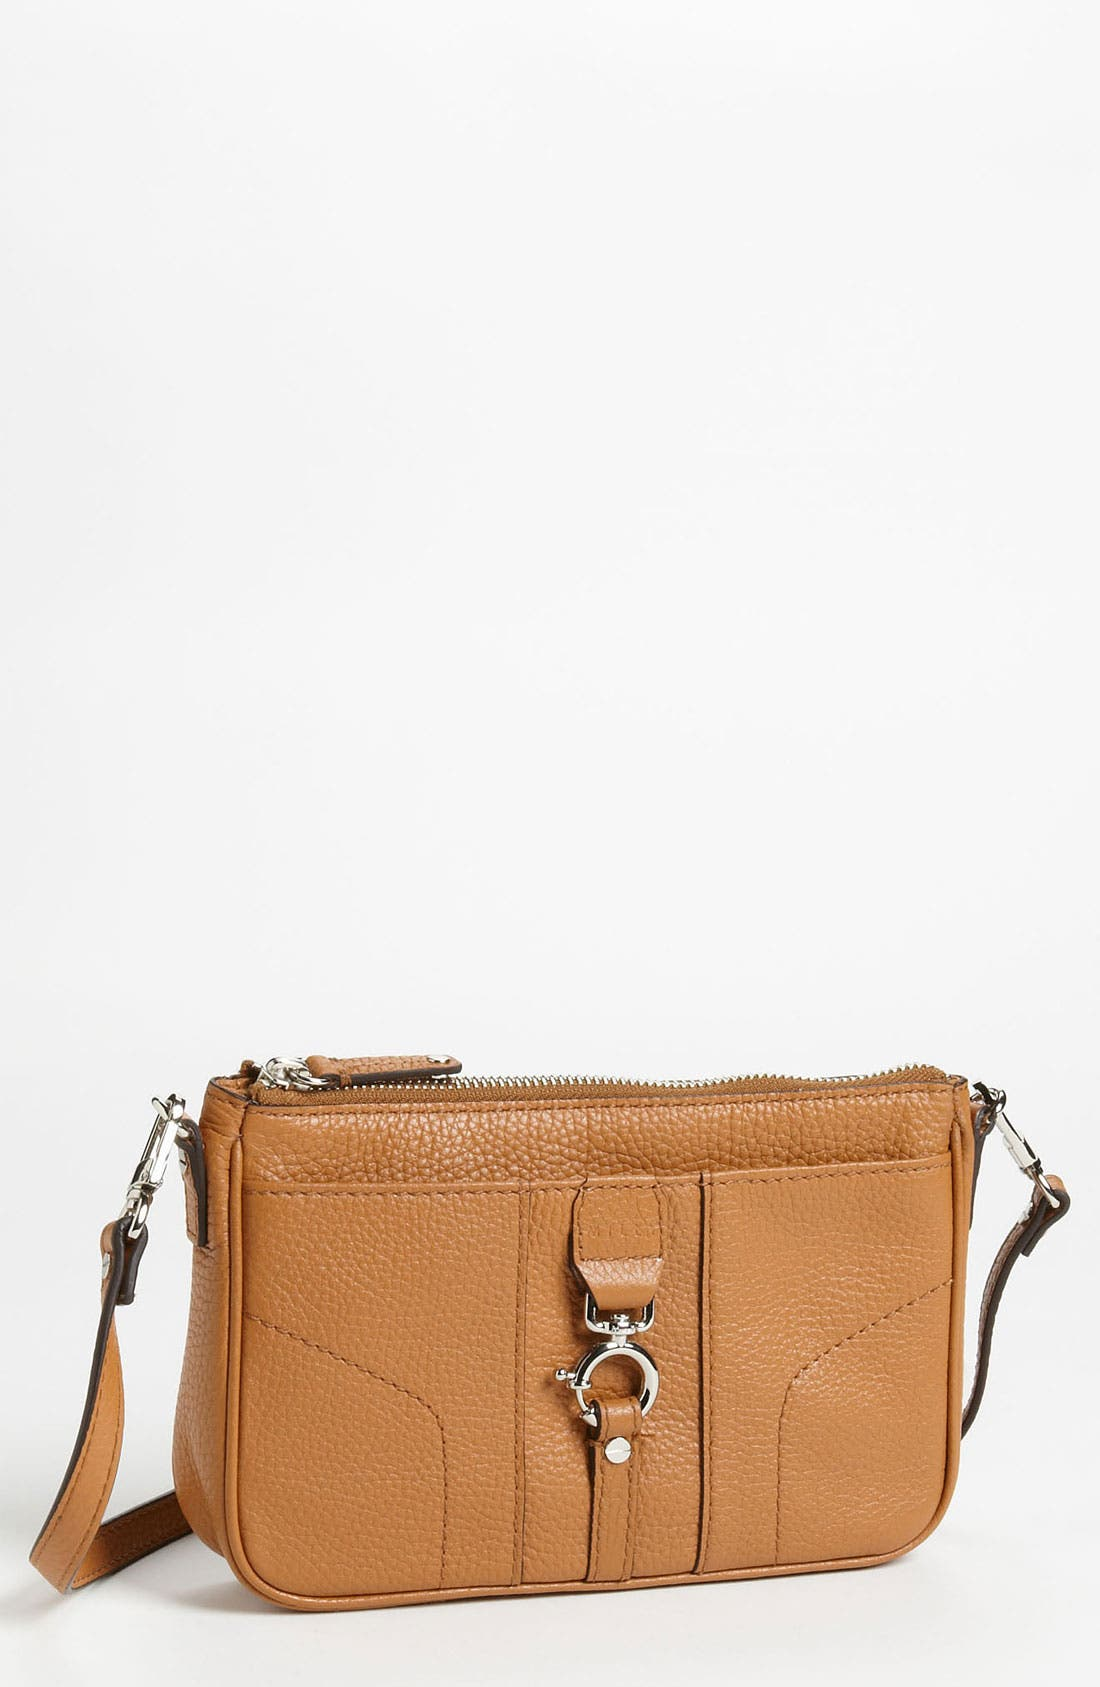 Main Image - Milly 'Felicity' Crossbody Bag